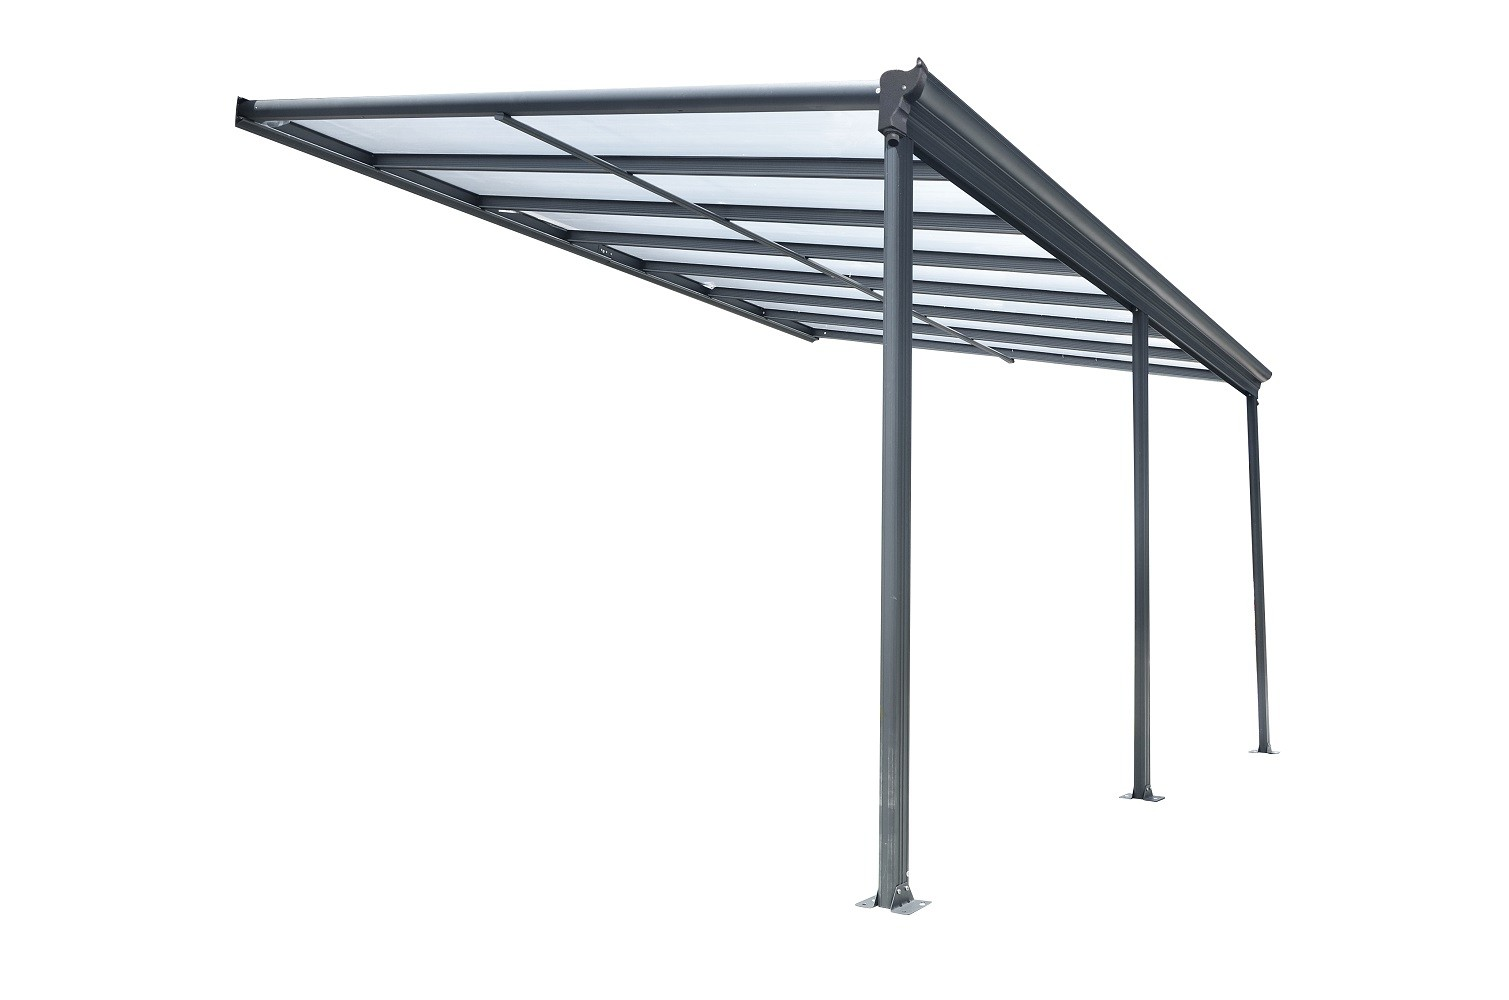 Kingston 10x16 Lean To Carport Patio Cover